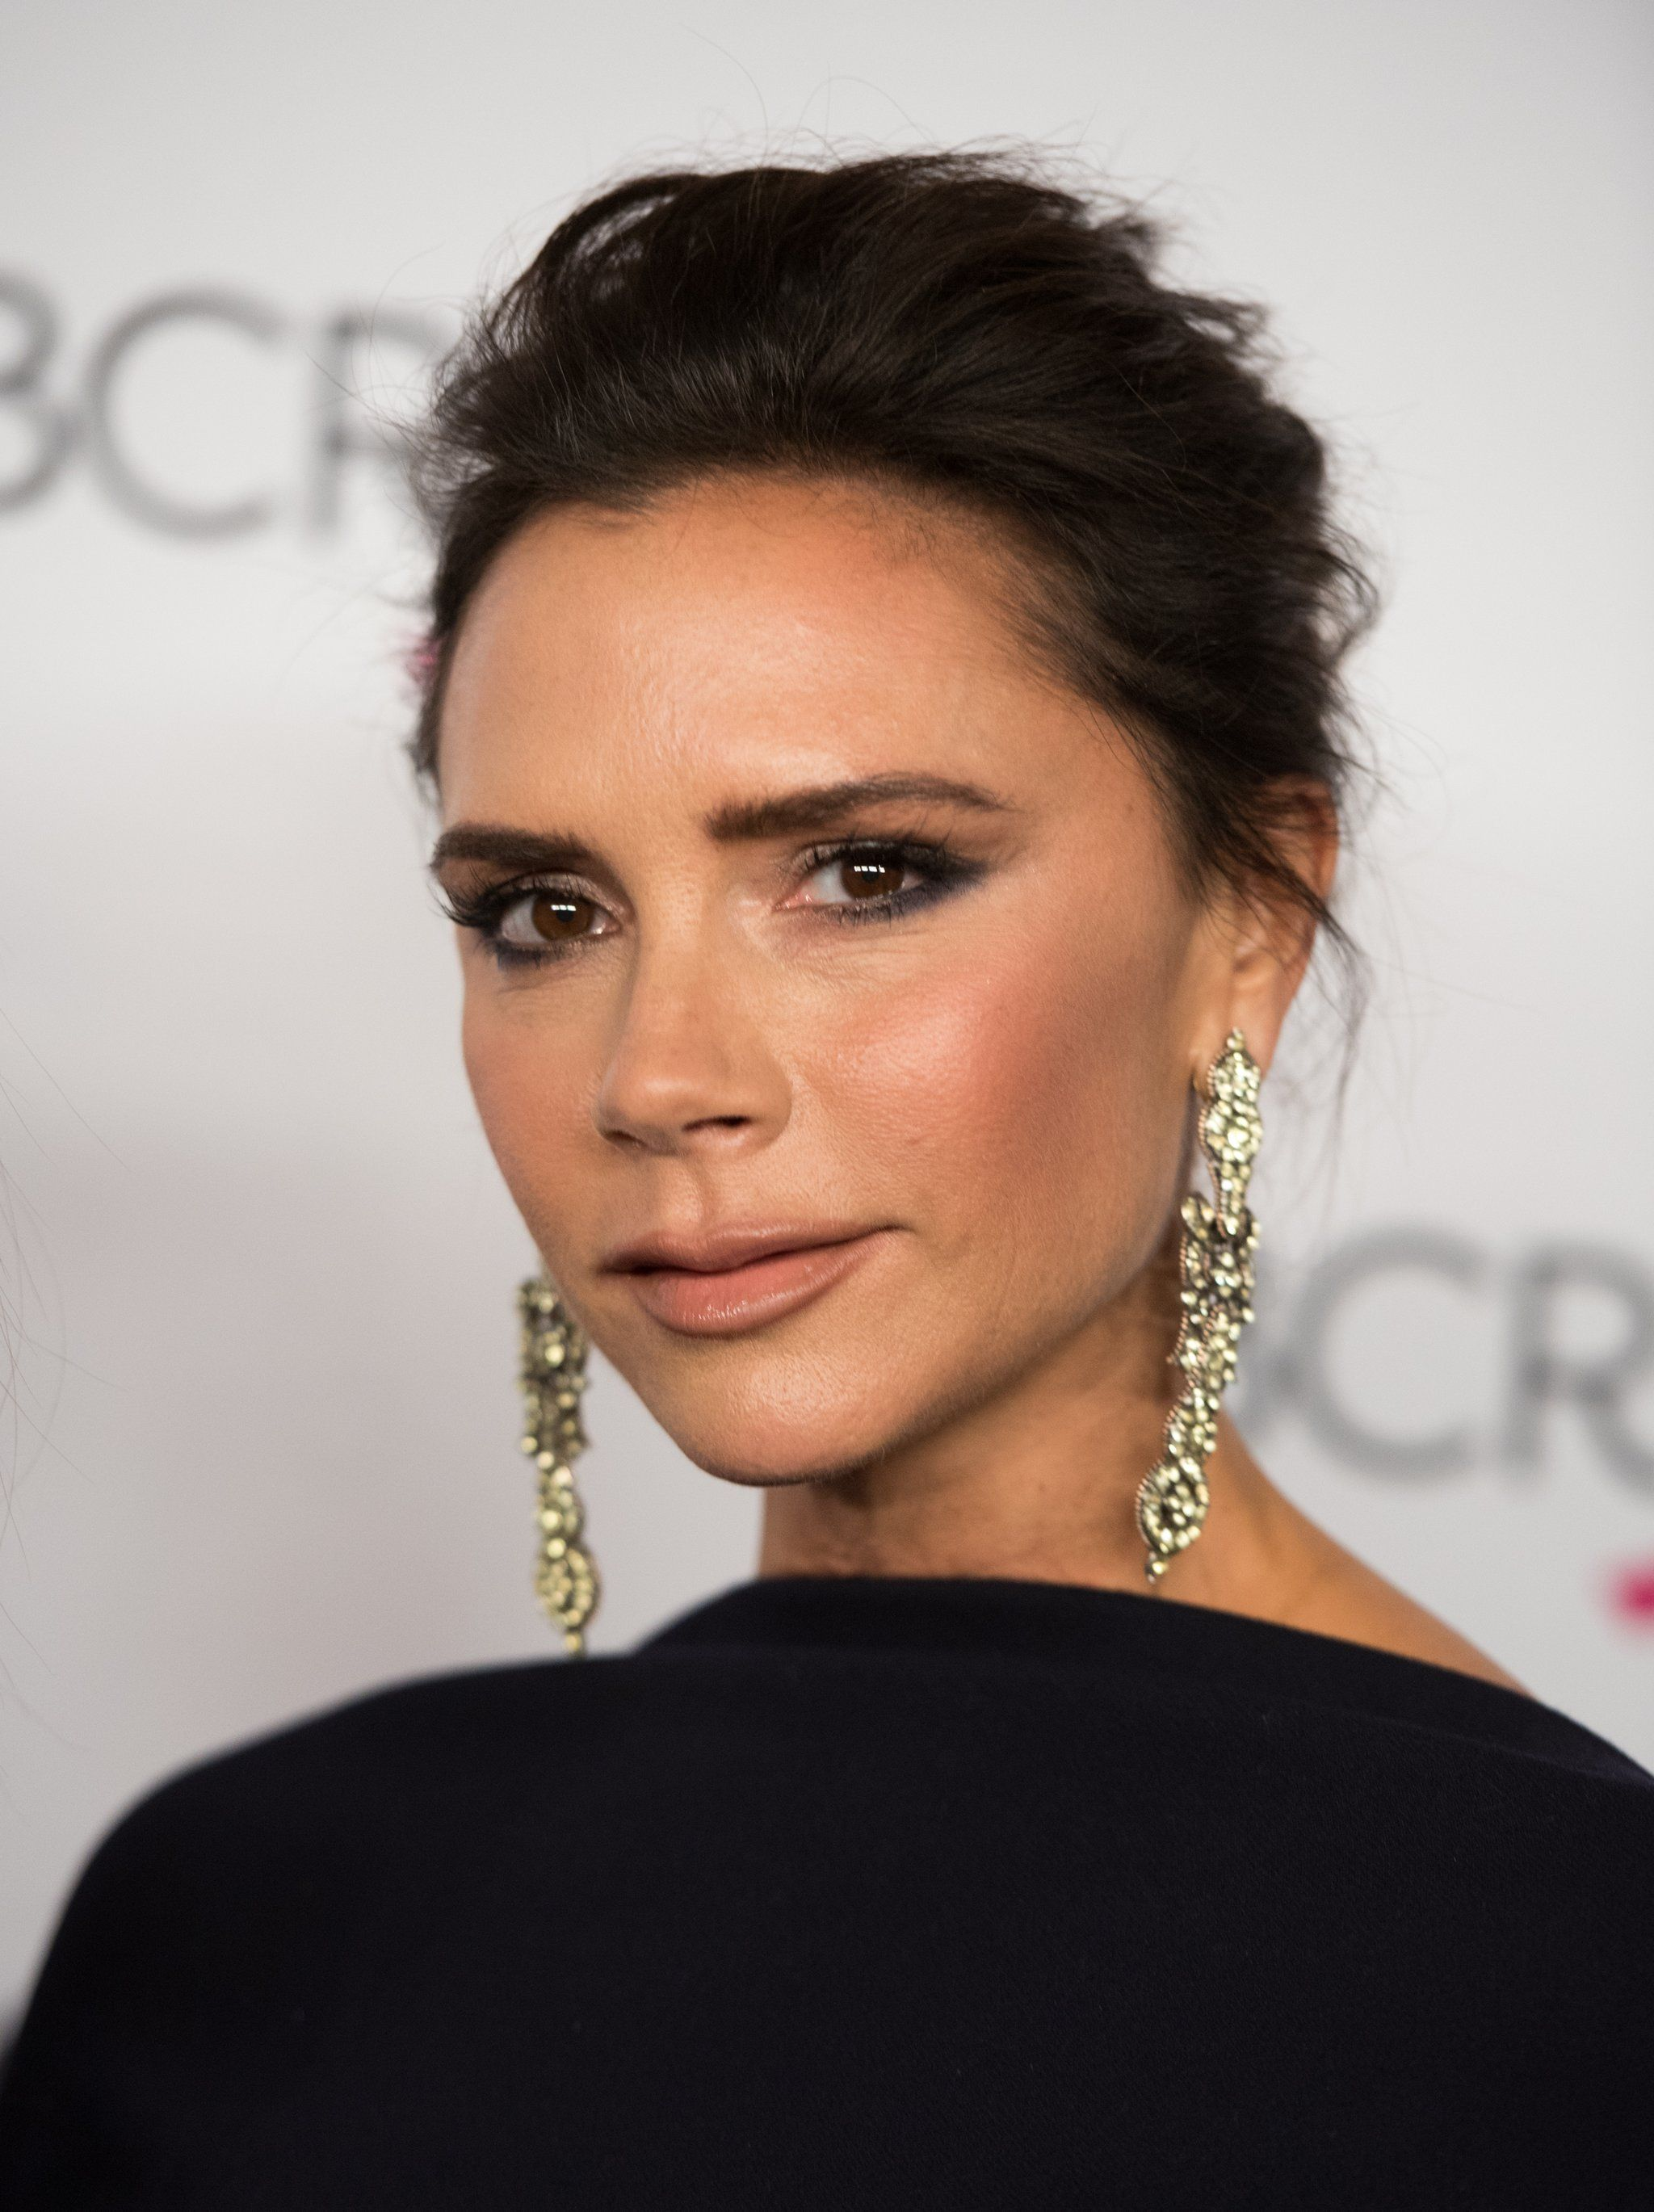 Victoria Beckham gave a makeup workshop (and a few more video tutorials from the stars themselves)